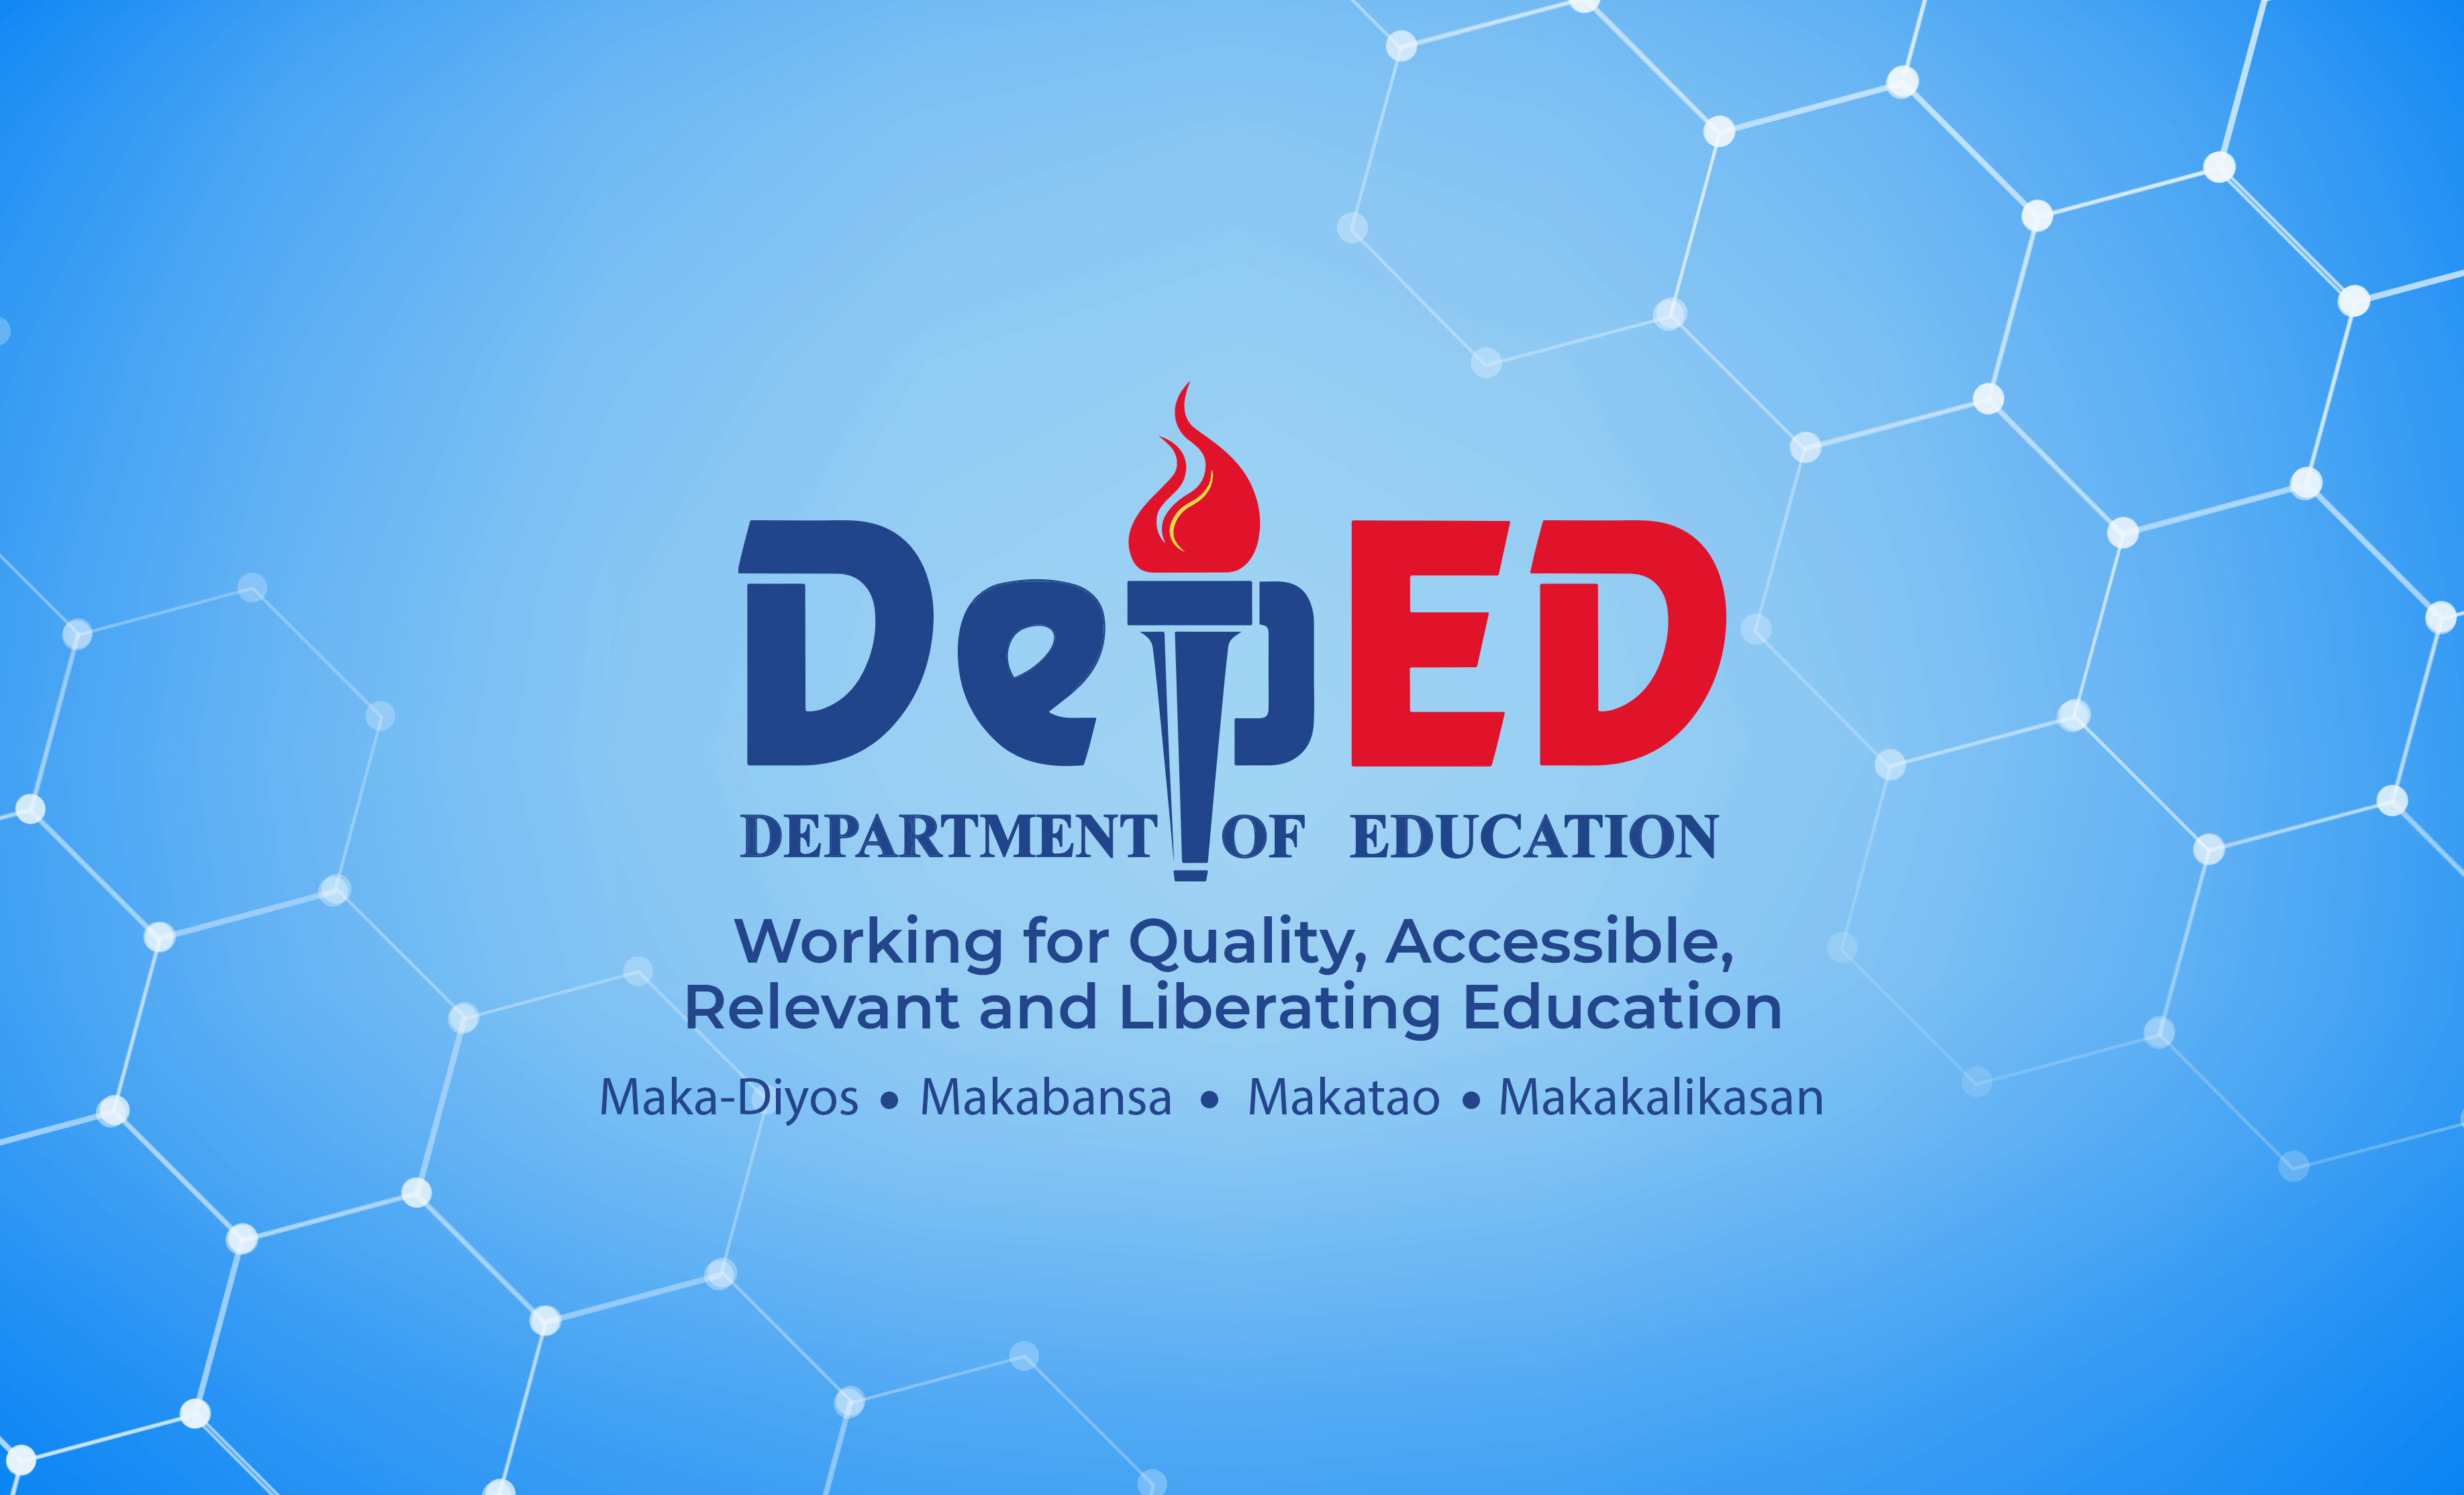 Official Wallpapers for laptops and desktop PCs issued by the DepEd.